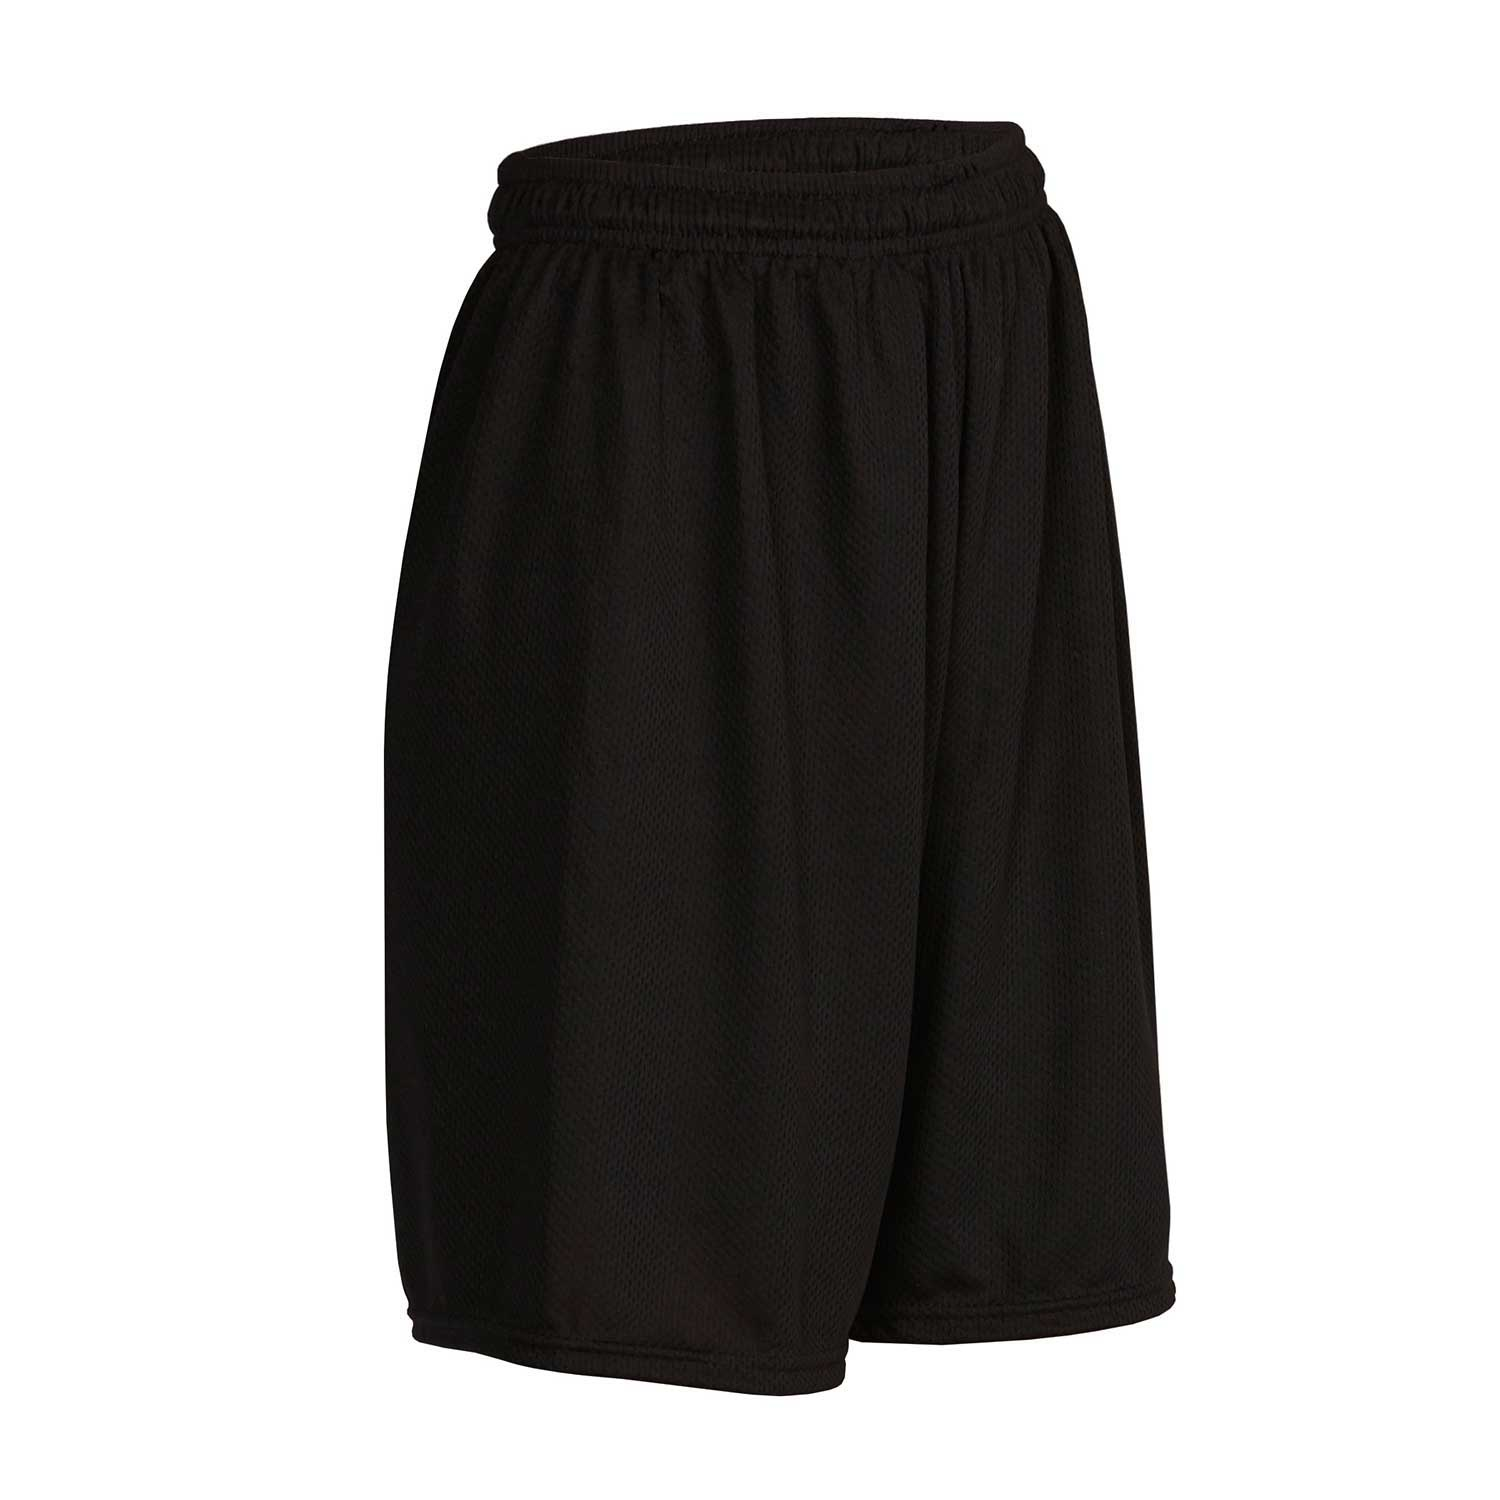 St. Philip P.E Mesh Short with Printed Logo